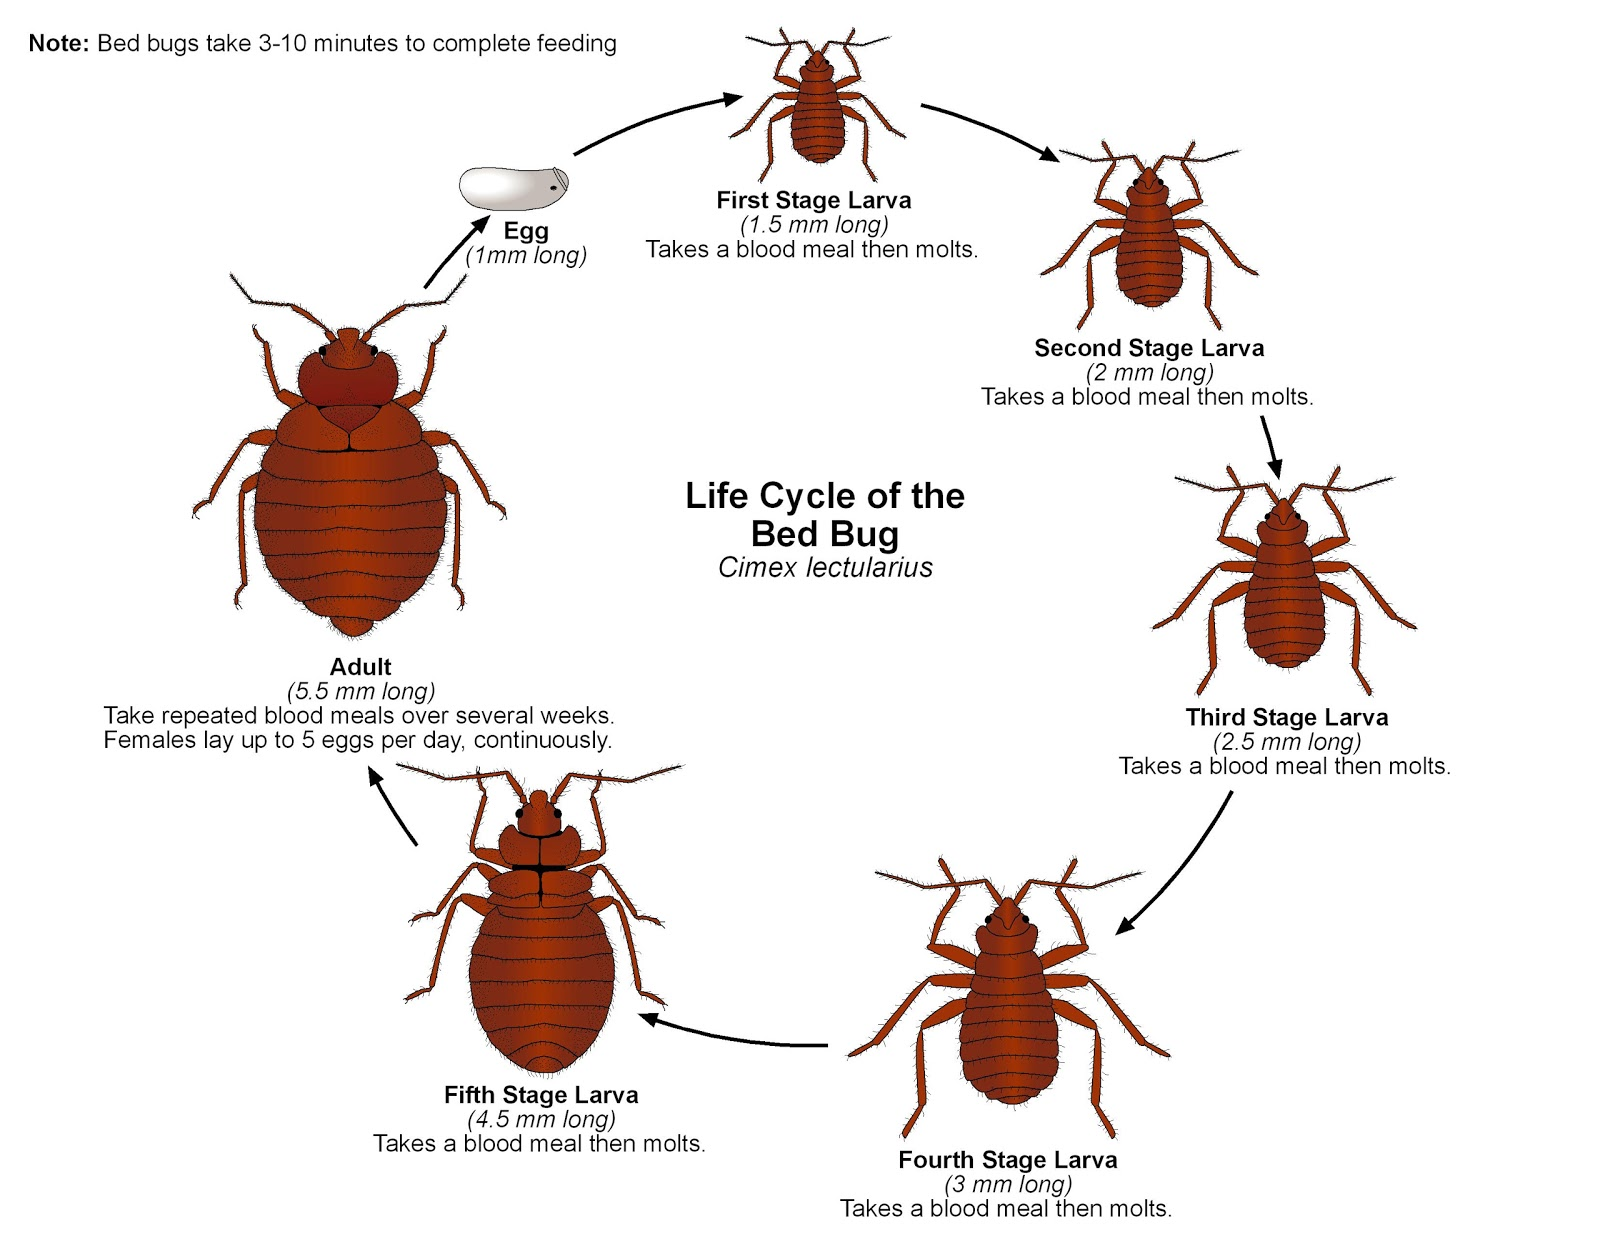 BED BUGS WHAT YOU NEED TO KNOW Article By Laurie Jo